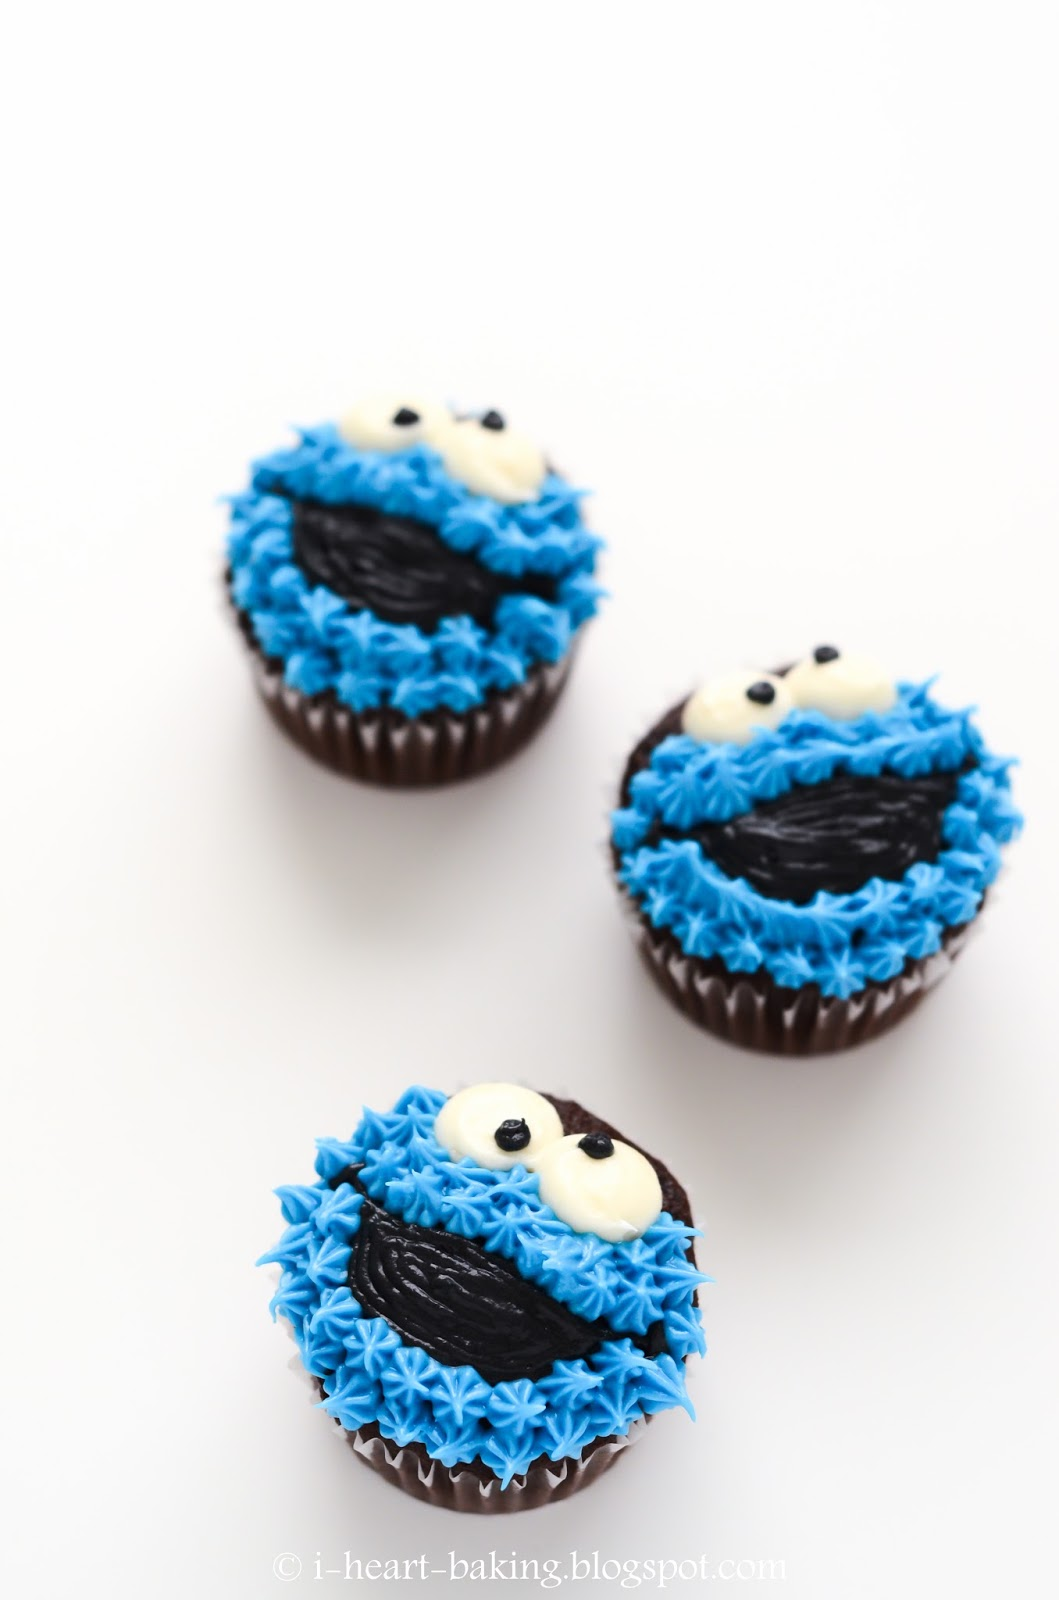 i heart baking!: cookie monster cupcakes